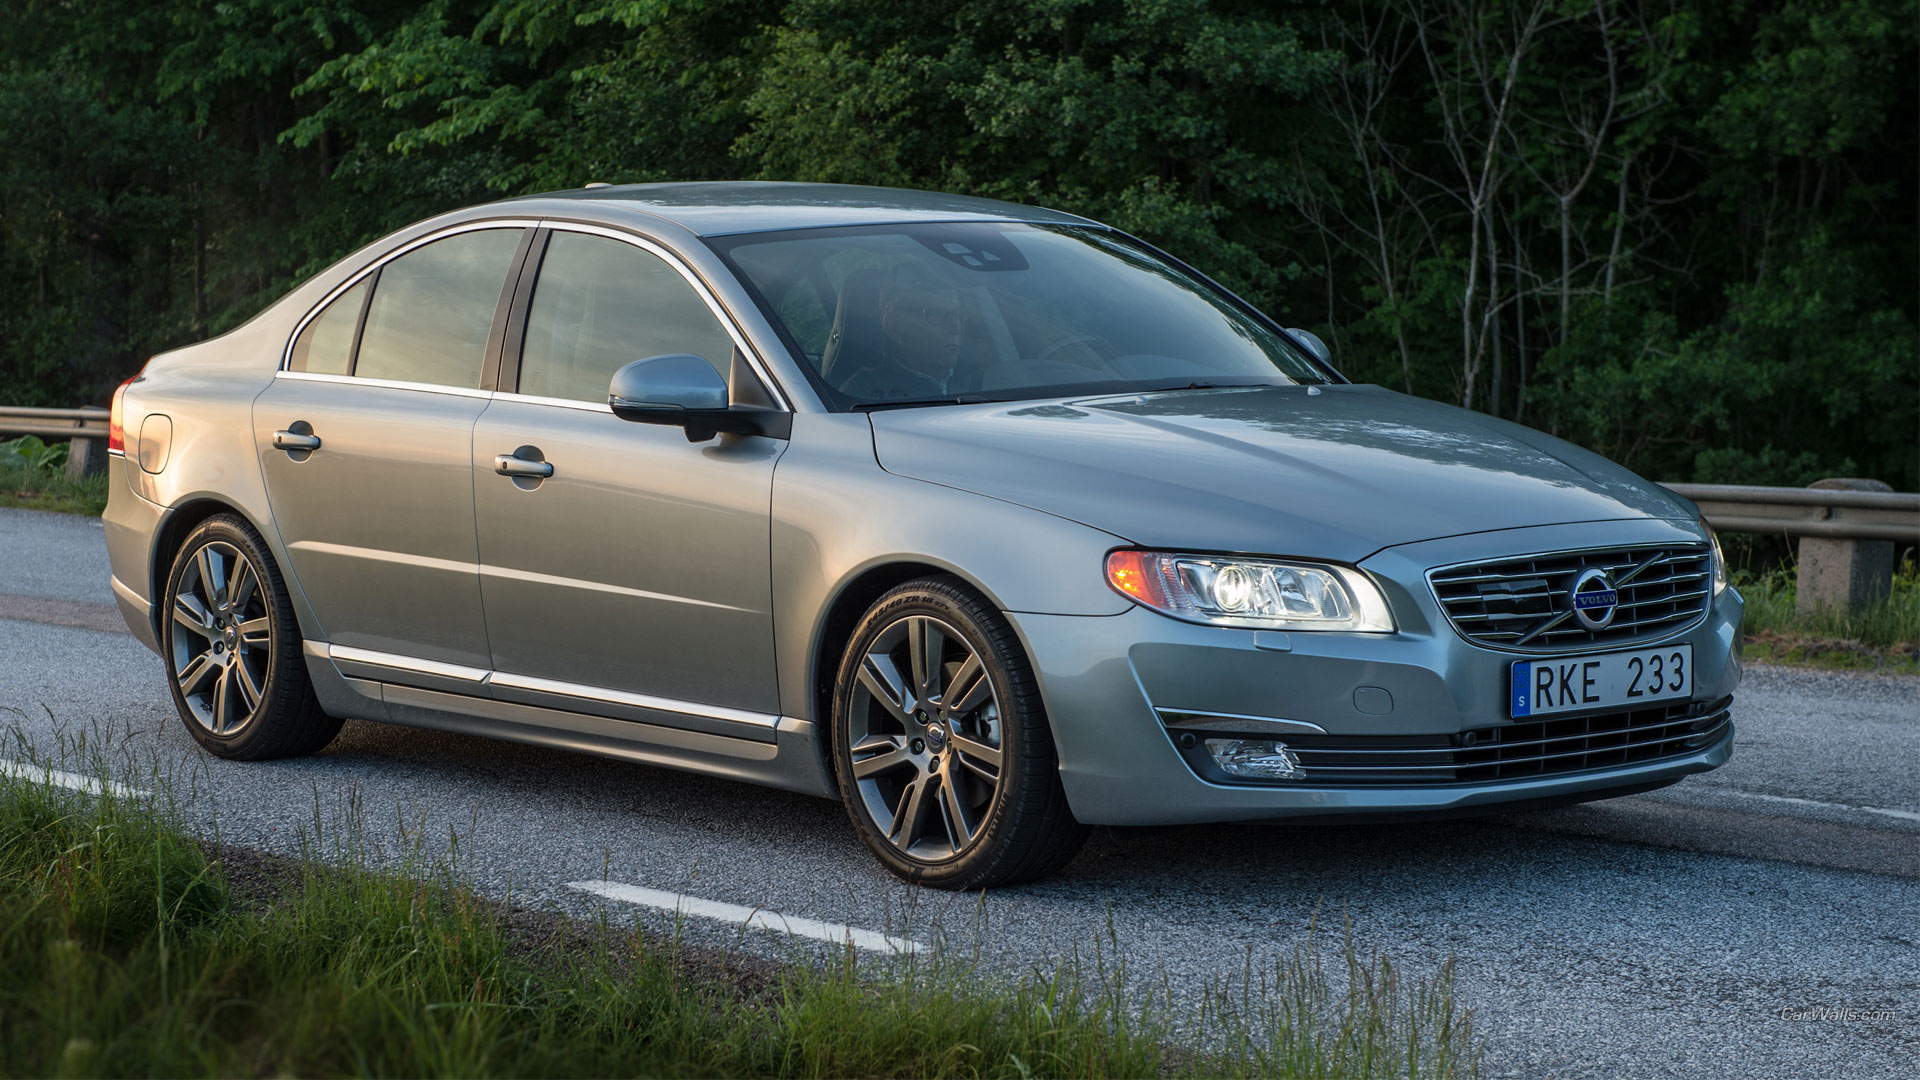 2014 volvo s80 full hd wallpaper and background 1920x1080 id 450519. Black Bedroom Furniture Sets. Home Design Ideas